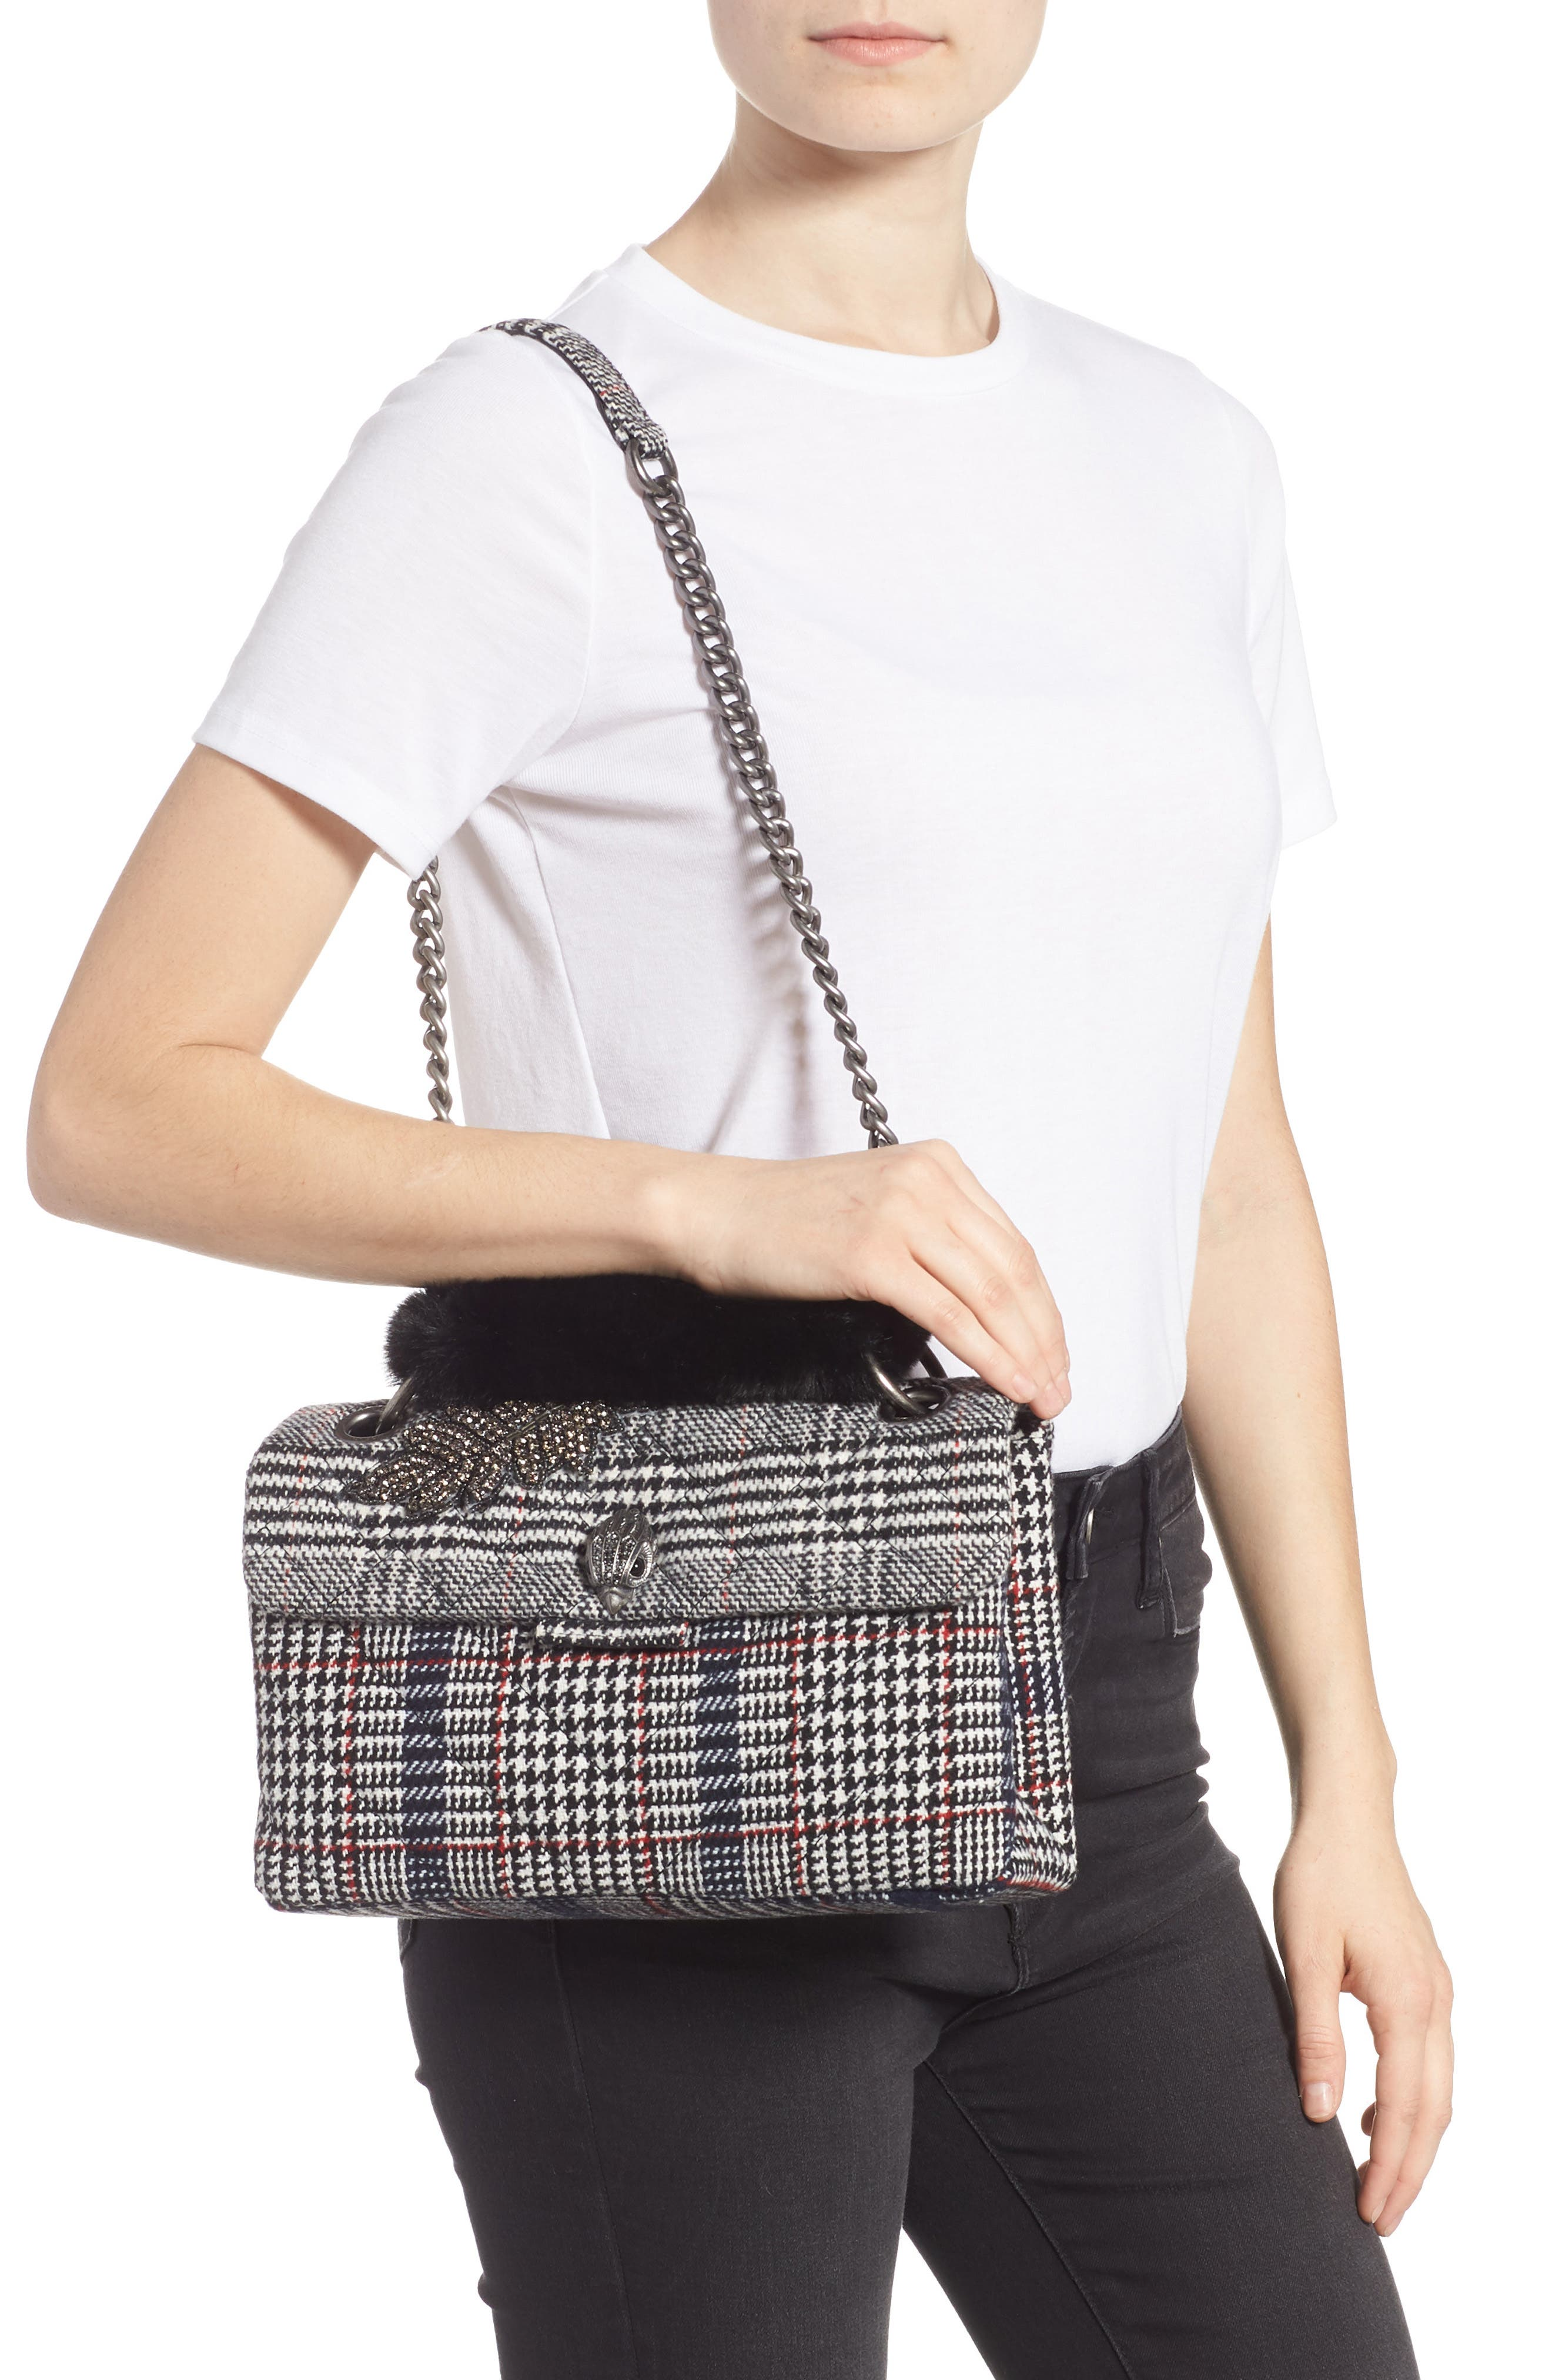 Kensington Plaid Shoulder Bag with Faux Fur,                             Alternate thumbnail 2, color,                             BLACK/ OTHER